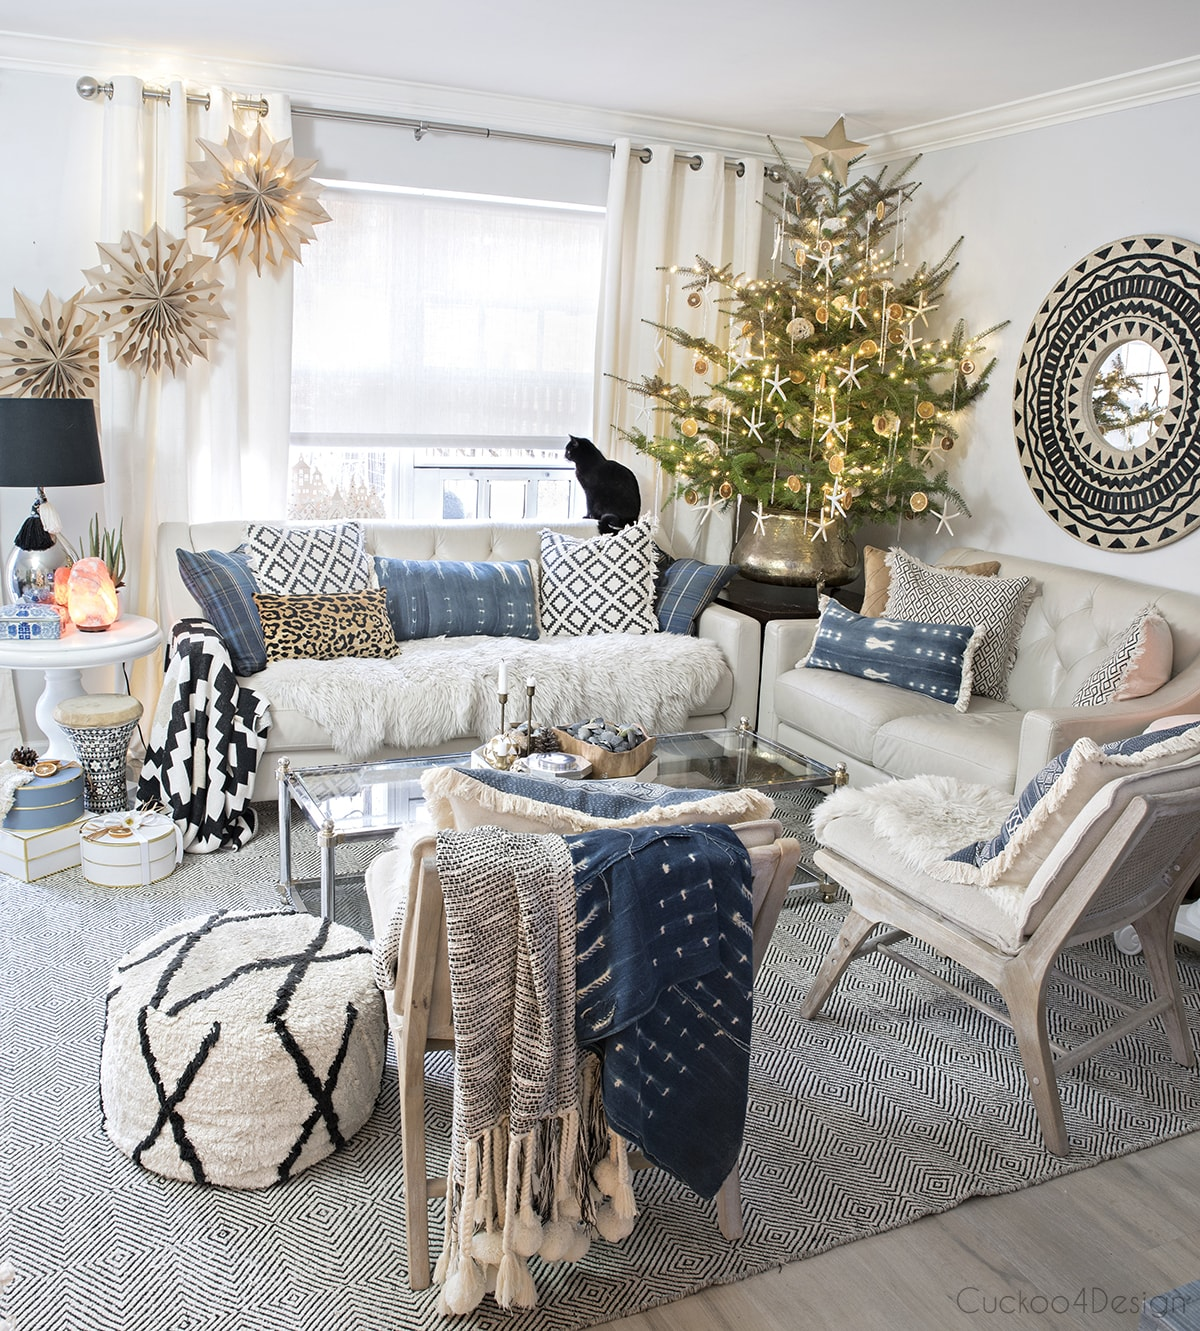 3D snowflakes hanging in neutral boho living room